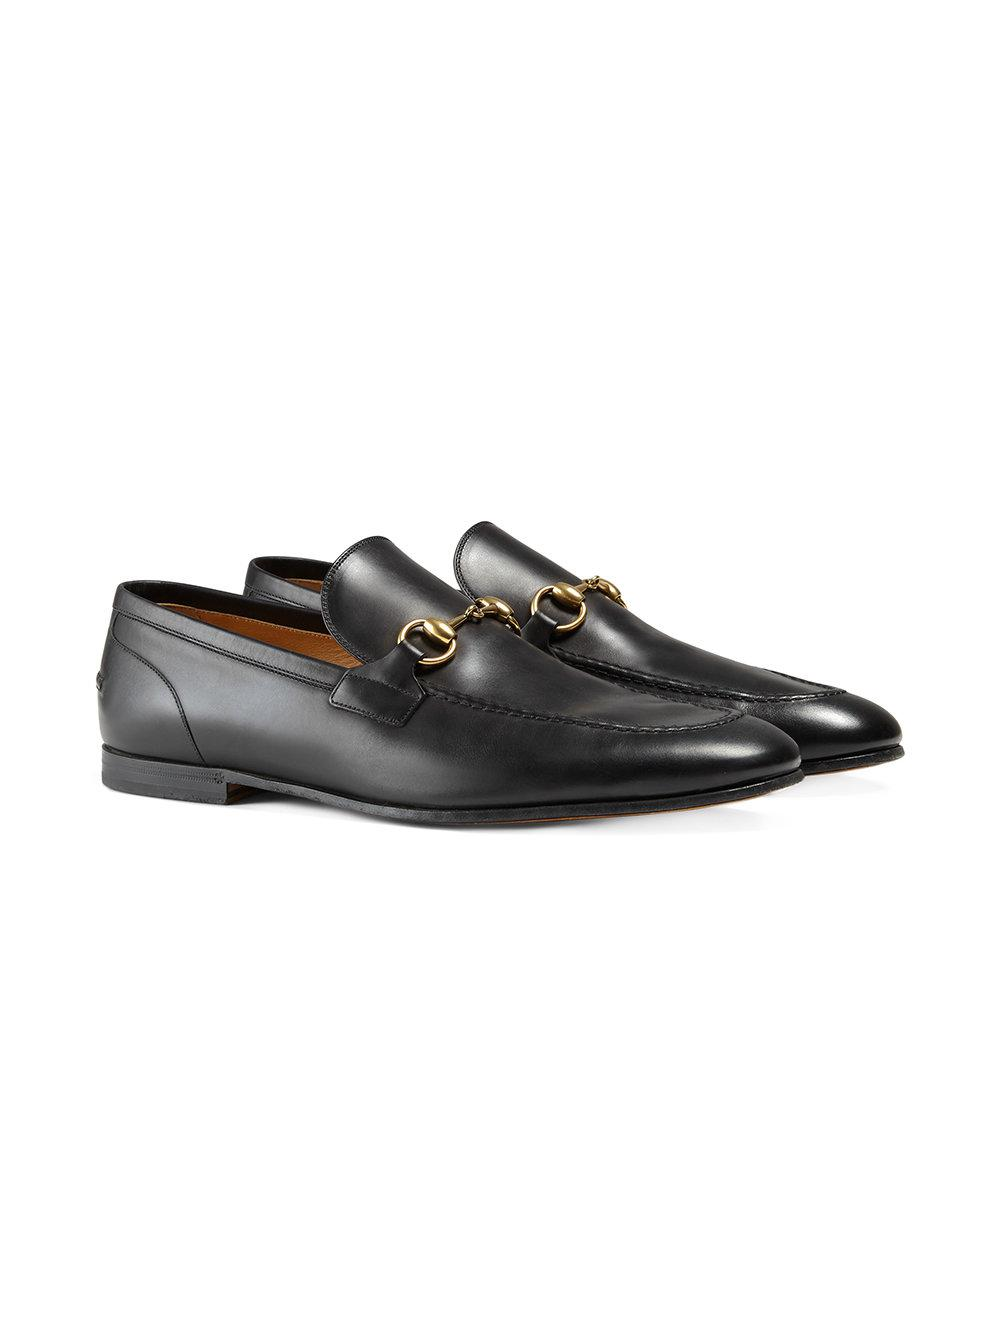 61c43a66fd806 Gucci Jordaan Leather Loafer in Black for Men - Save 5% - Lyst